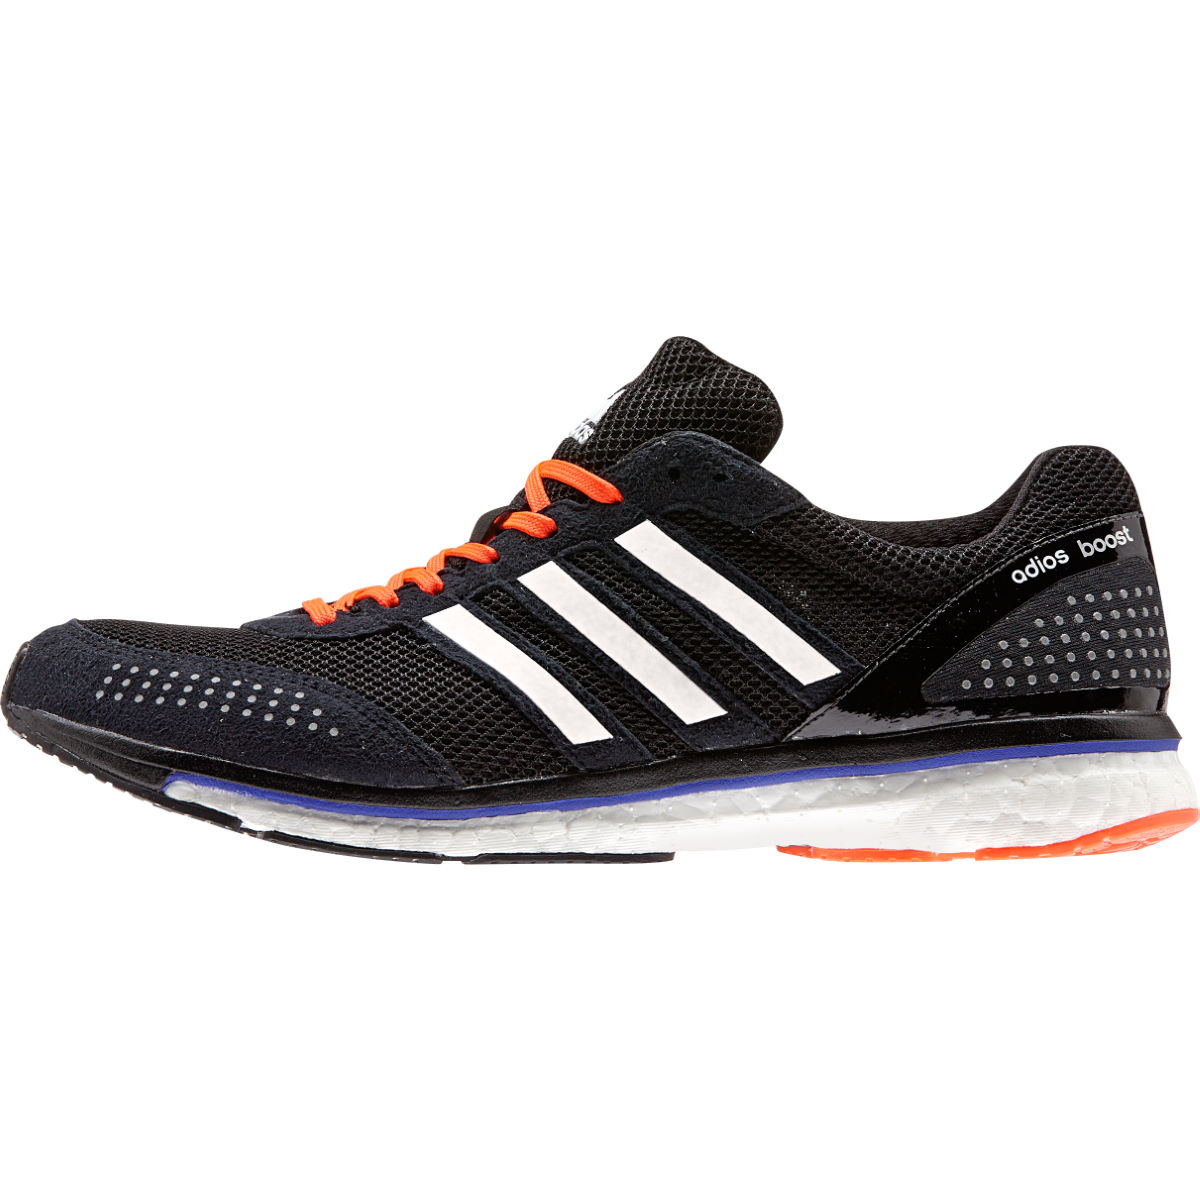 Adidas Adizero Adios Boost 2 Shoes (AW15)